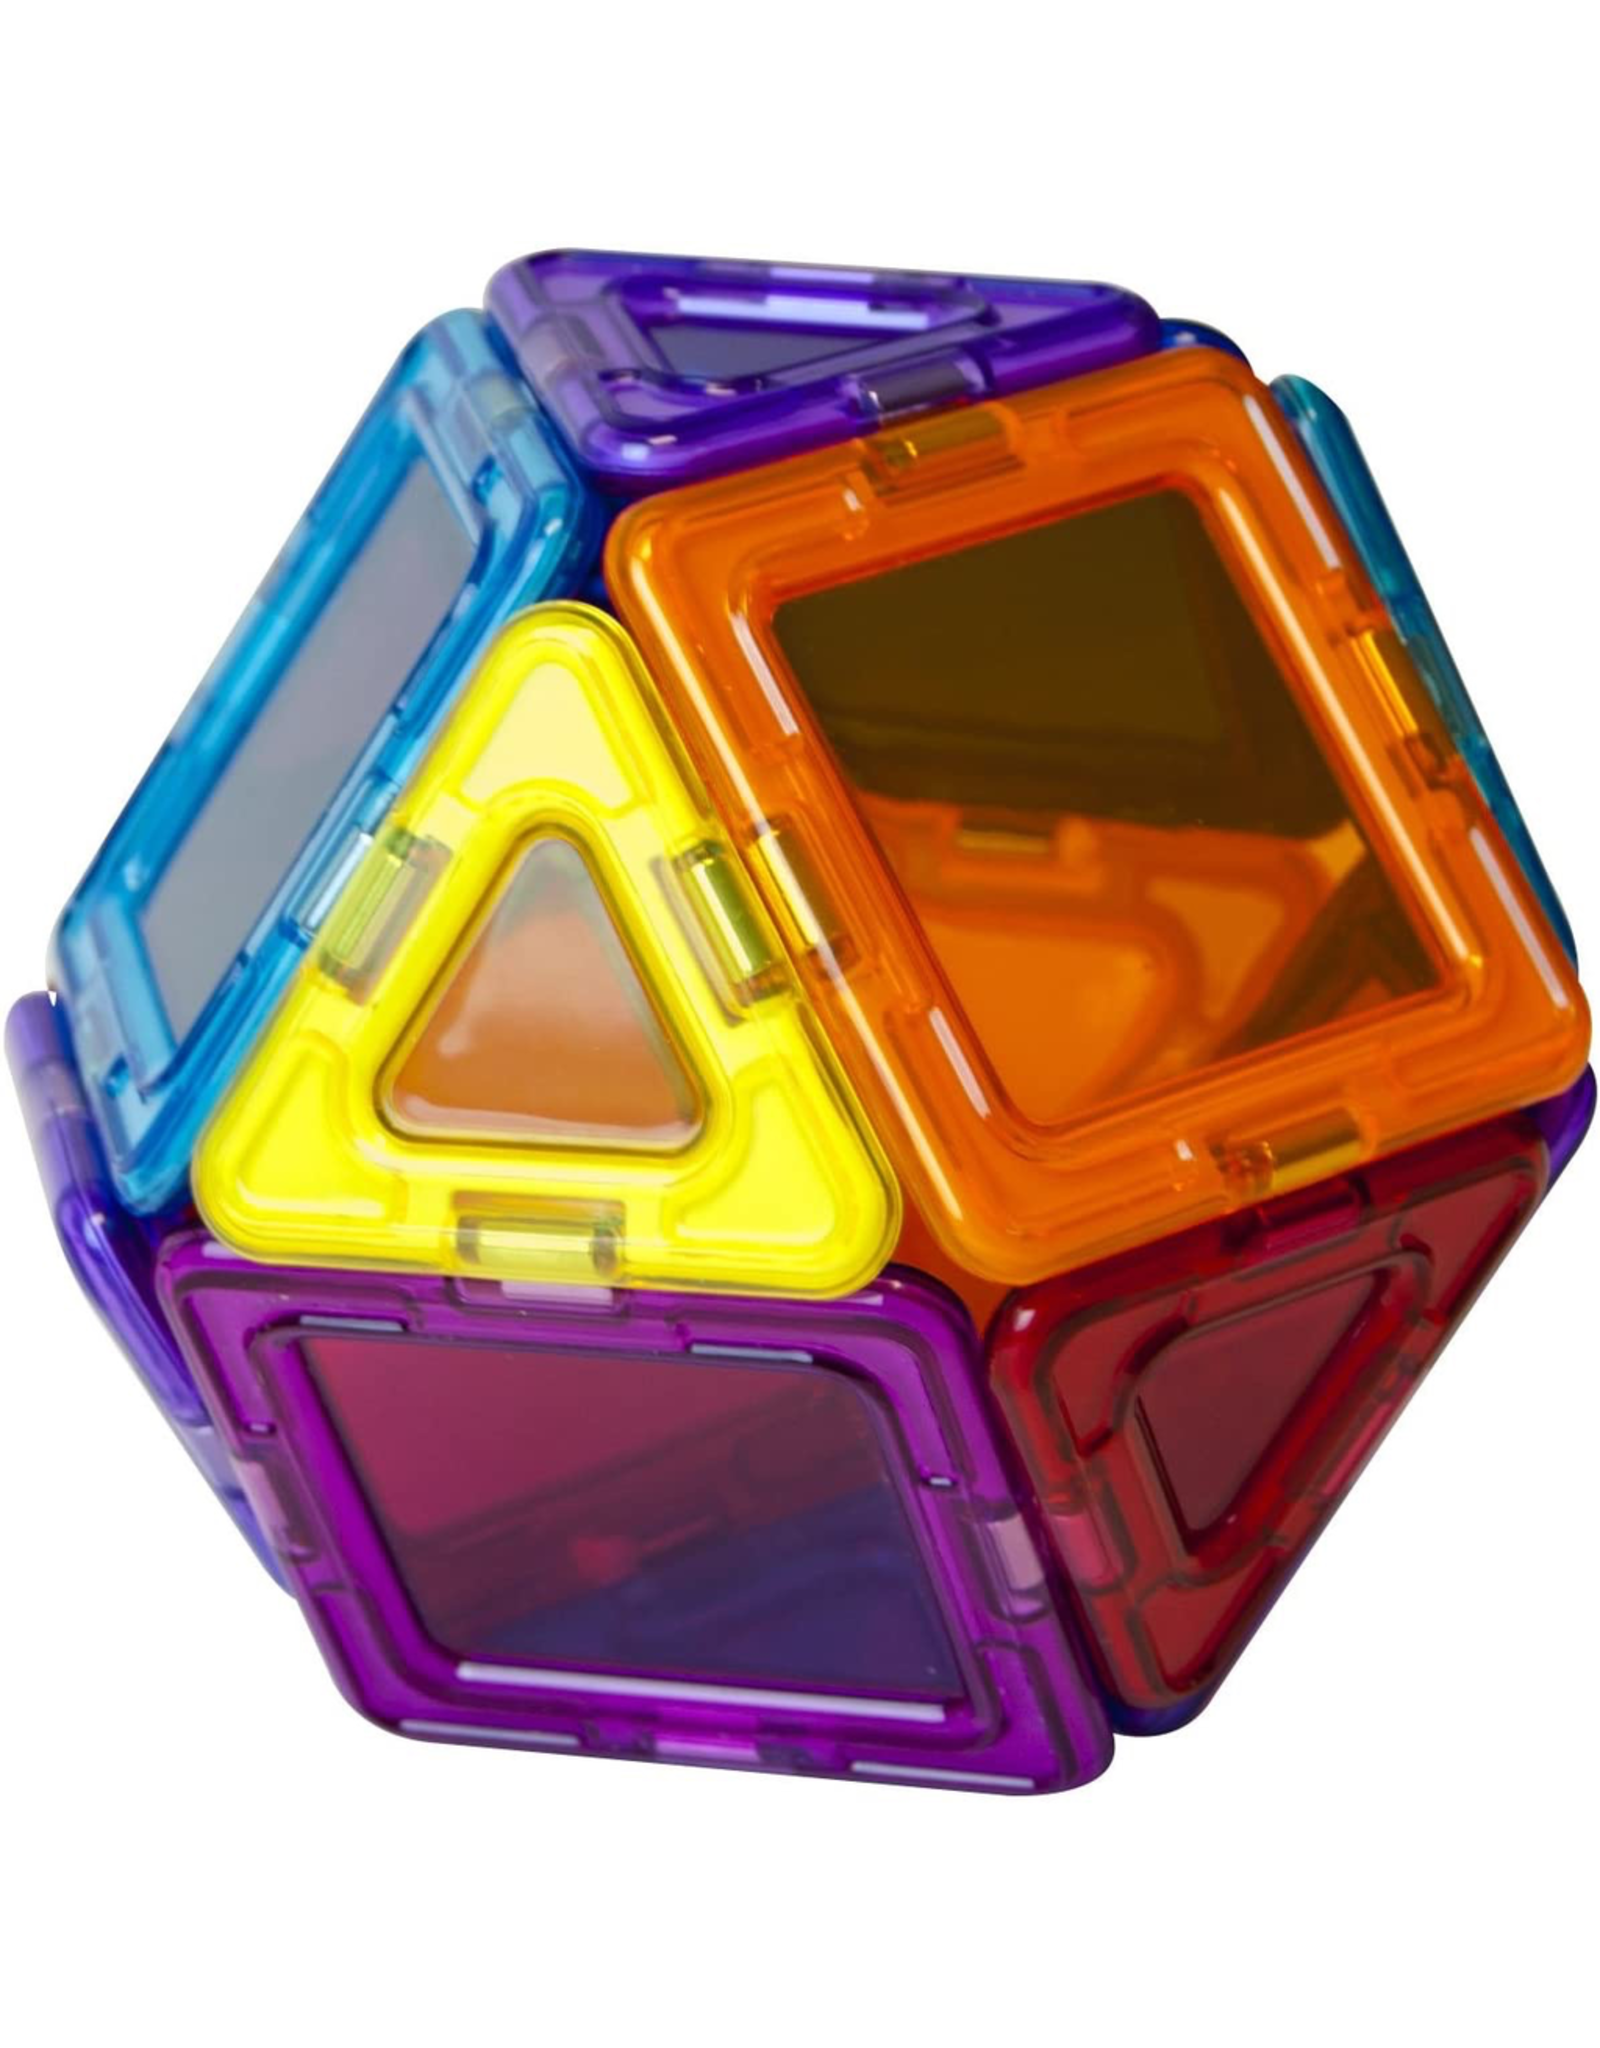 Magformers MAGFORMERS - RAINBOW CLEAR SOLIDS 14 PIECES